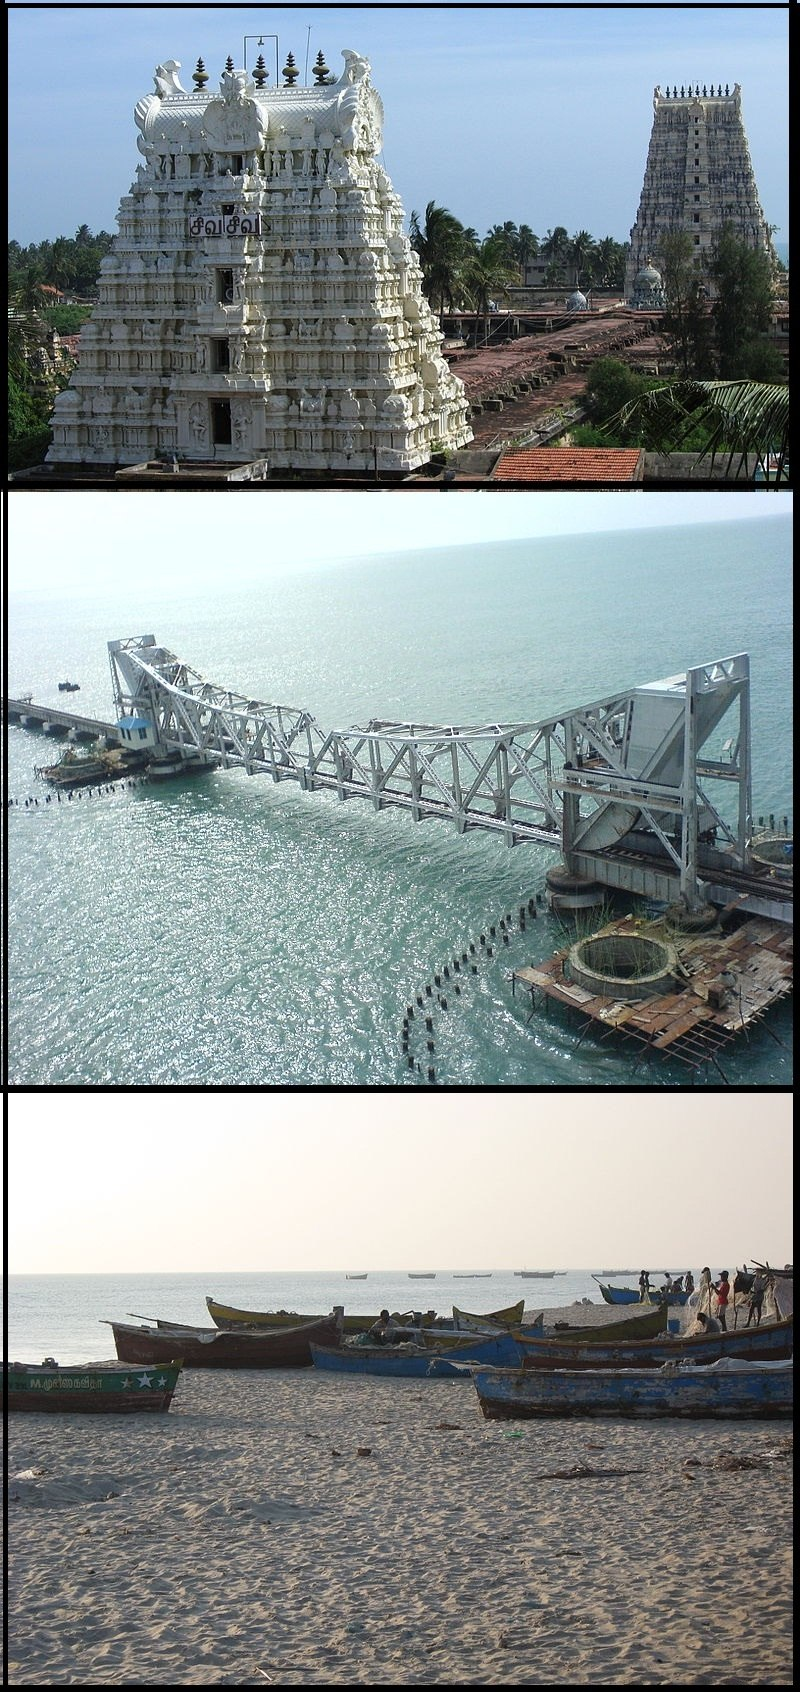 From top: Ramanathaswamy Temple tower, Pamban Bridge, and a set of fishing boats.